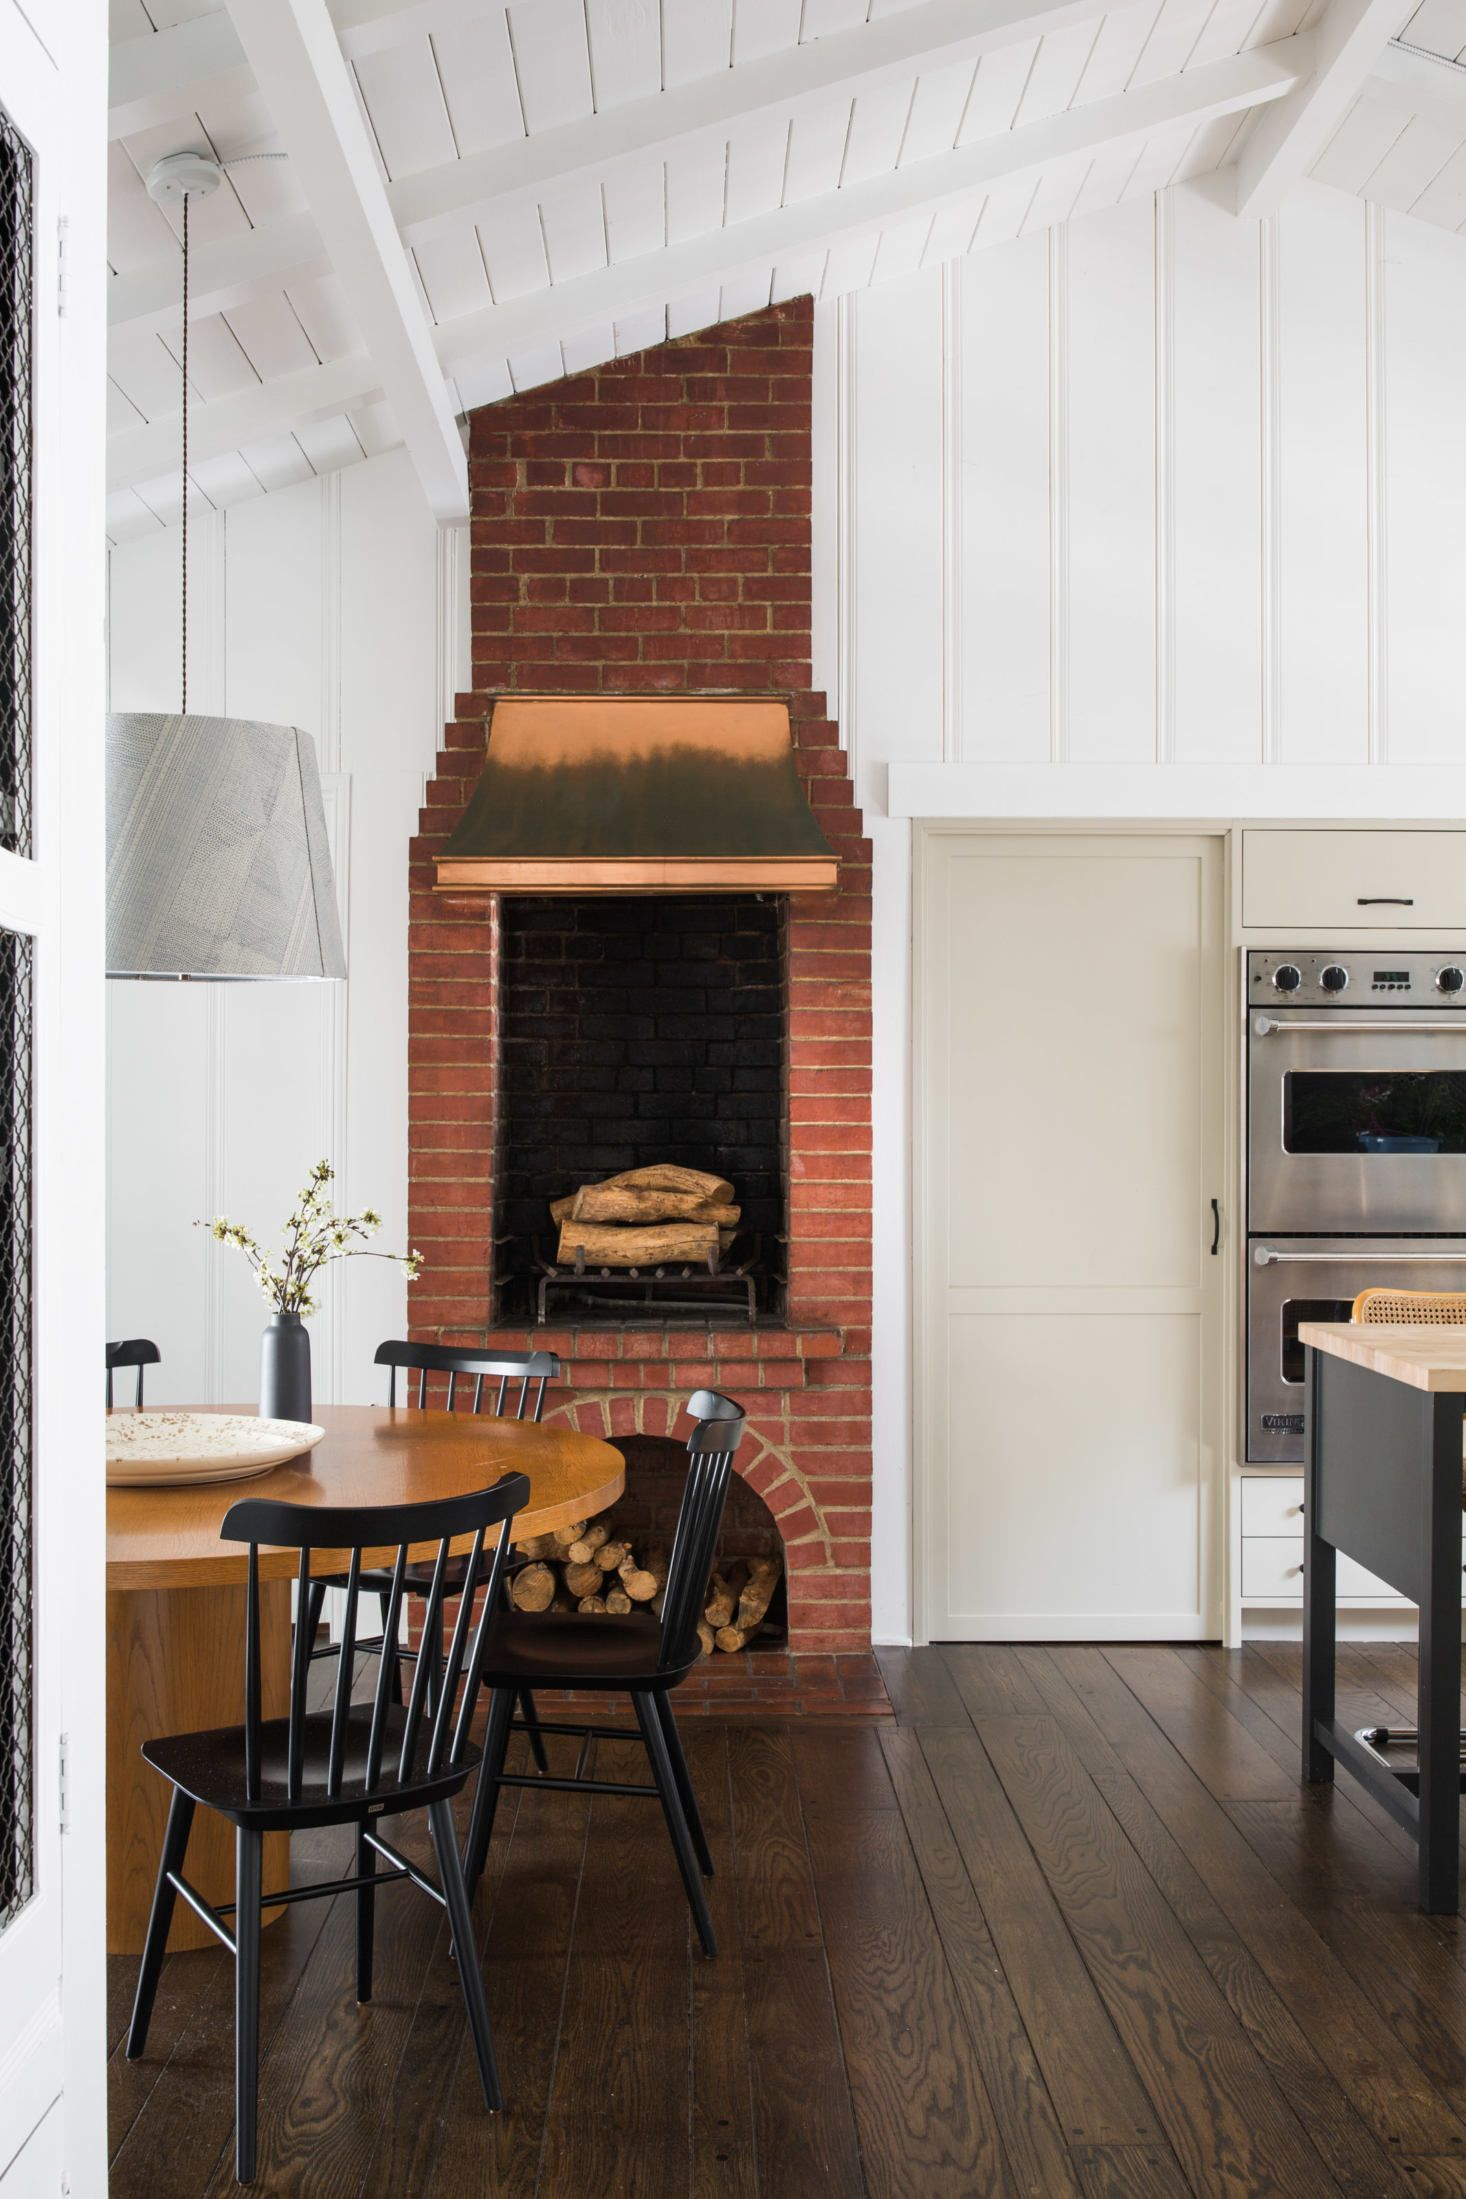 10 Best Fireplaces Kitchen Fireplace Kitchens Without Upper Cabinets No Upper Cabinets